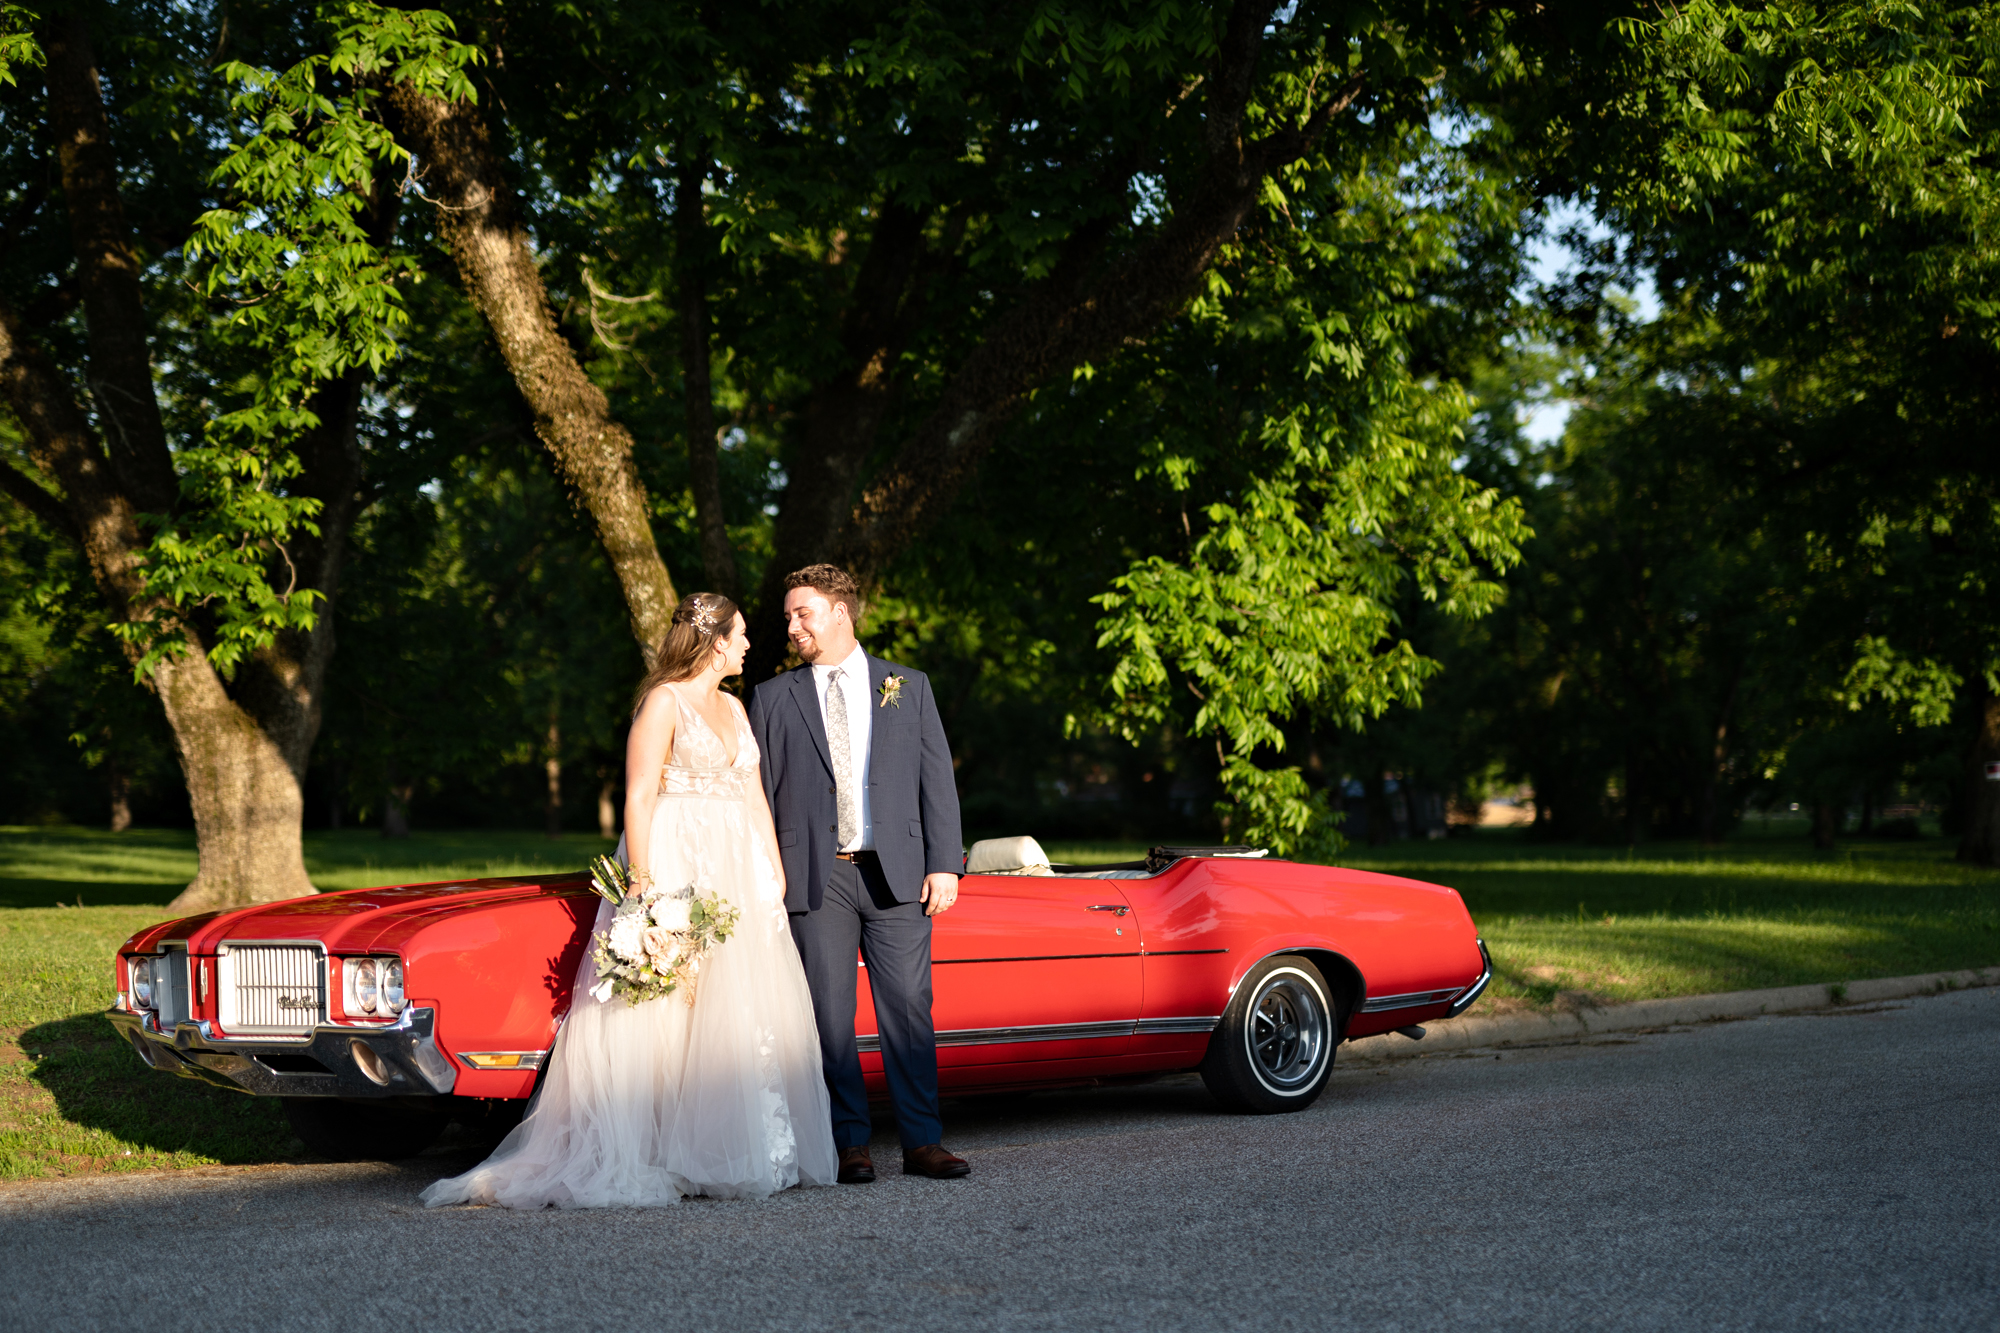 Eclectic-Alabama-Wedding-Photographers-Nick-Drollette-Photography-116.jpg